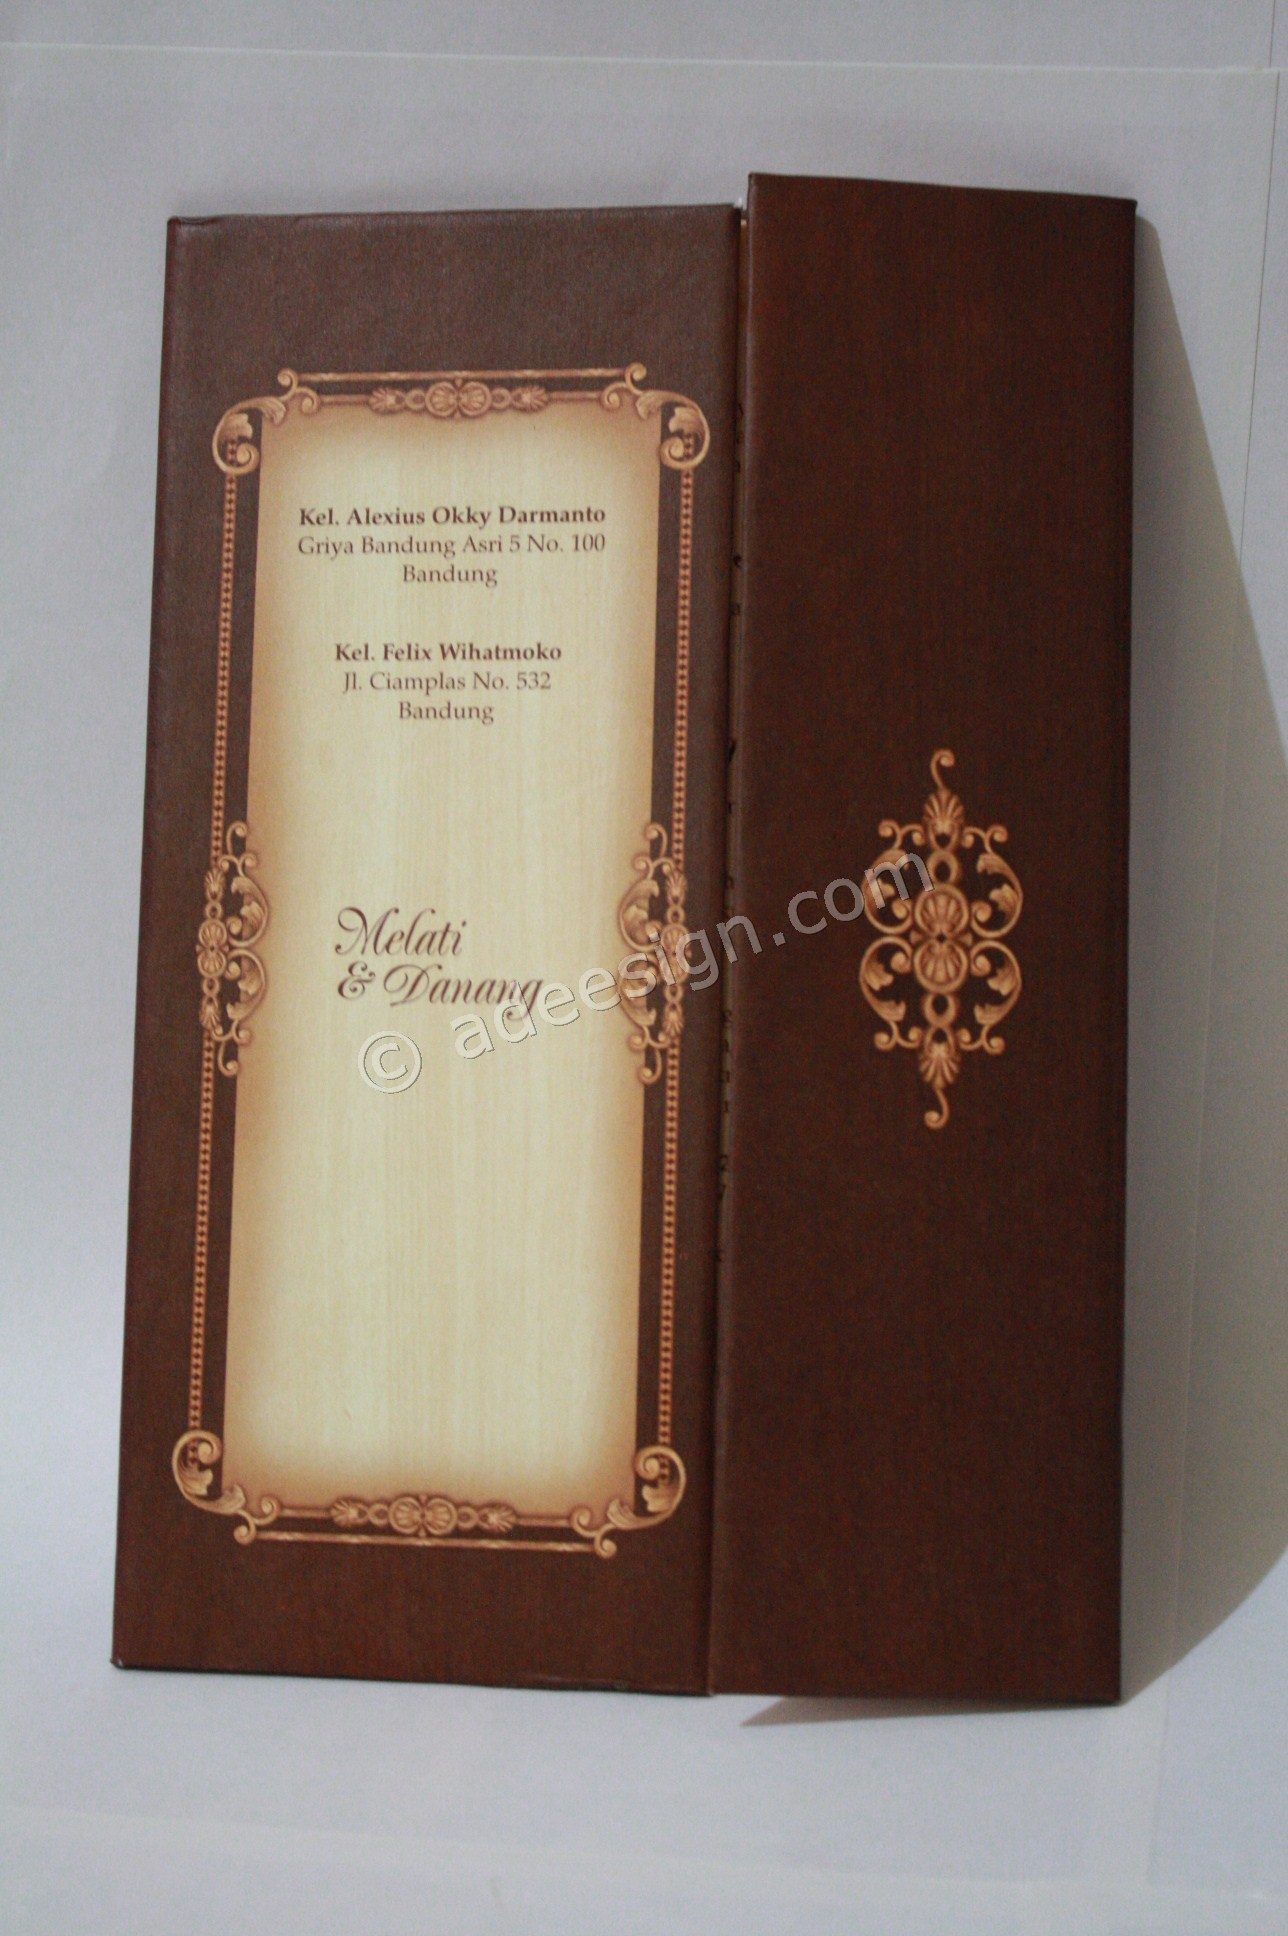 Kartu Undangan Pernikahan Hard Cover Melati dan Danang 2 - Membuat Wedding Invitations Eksklusif di Jeruk